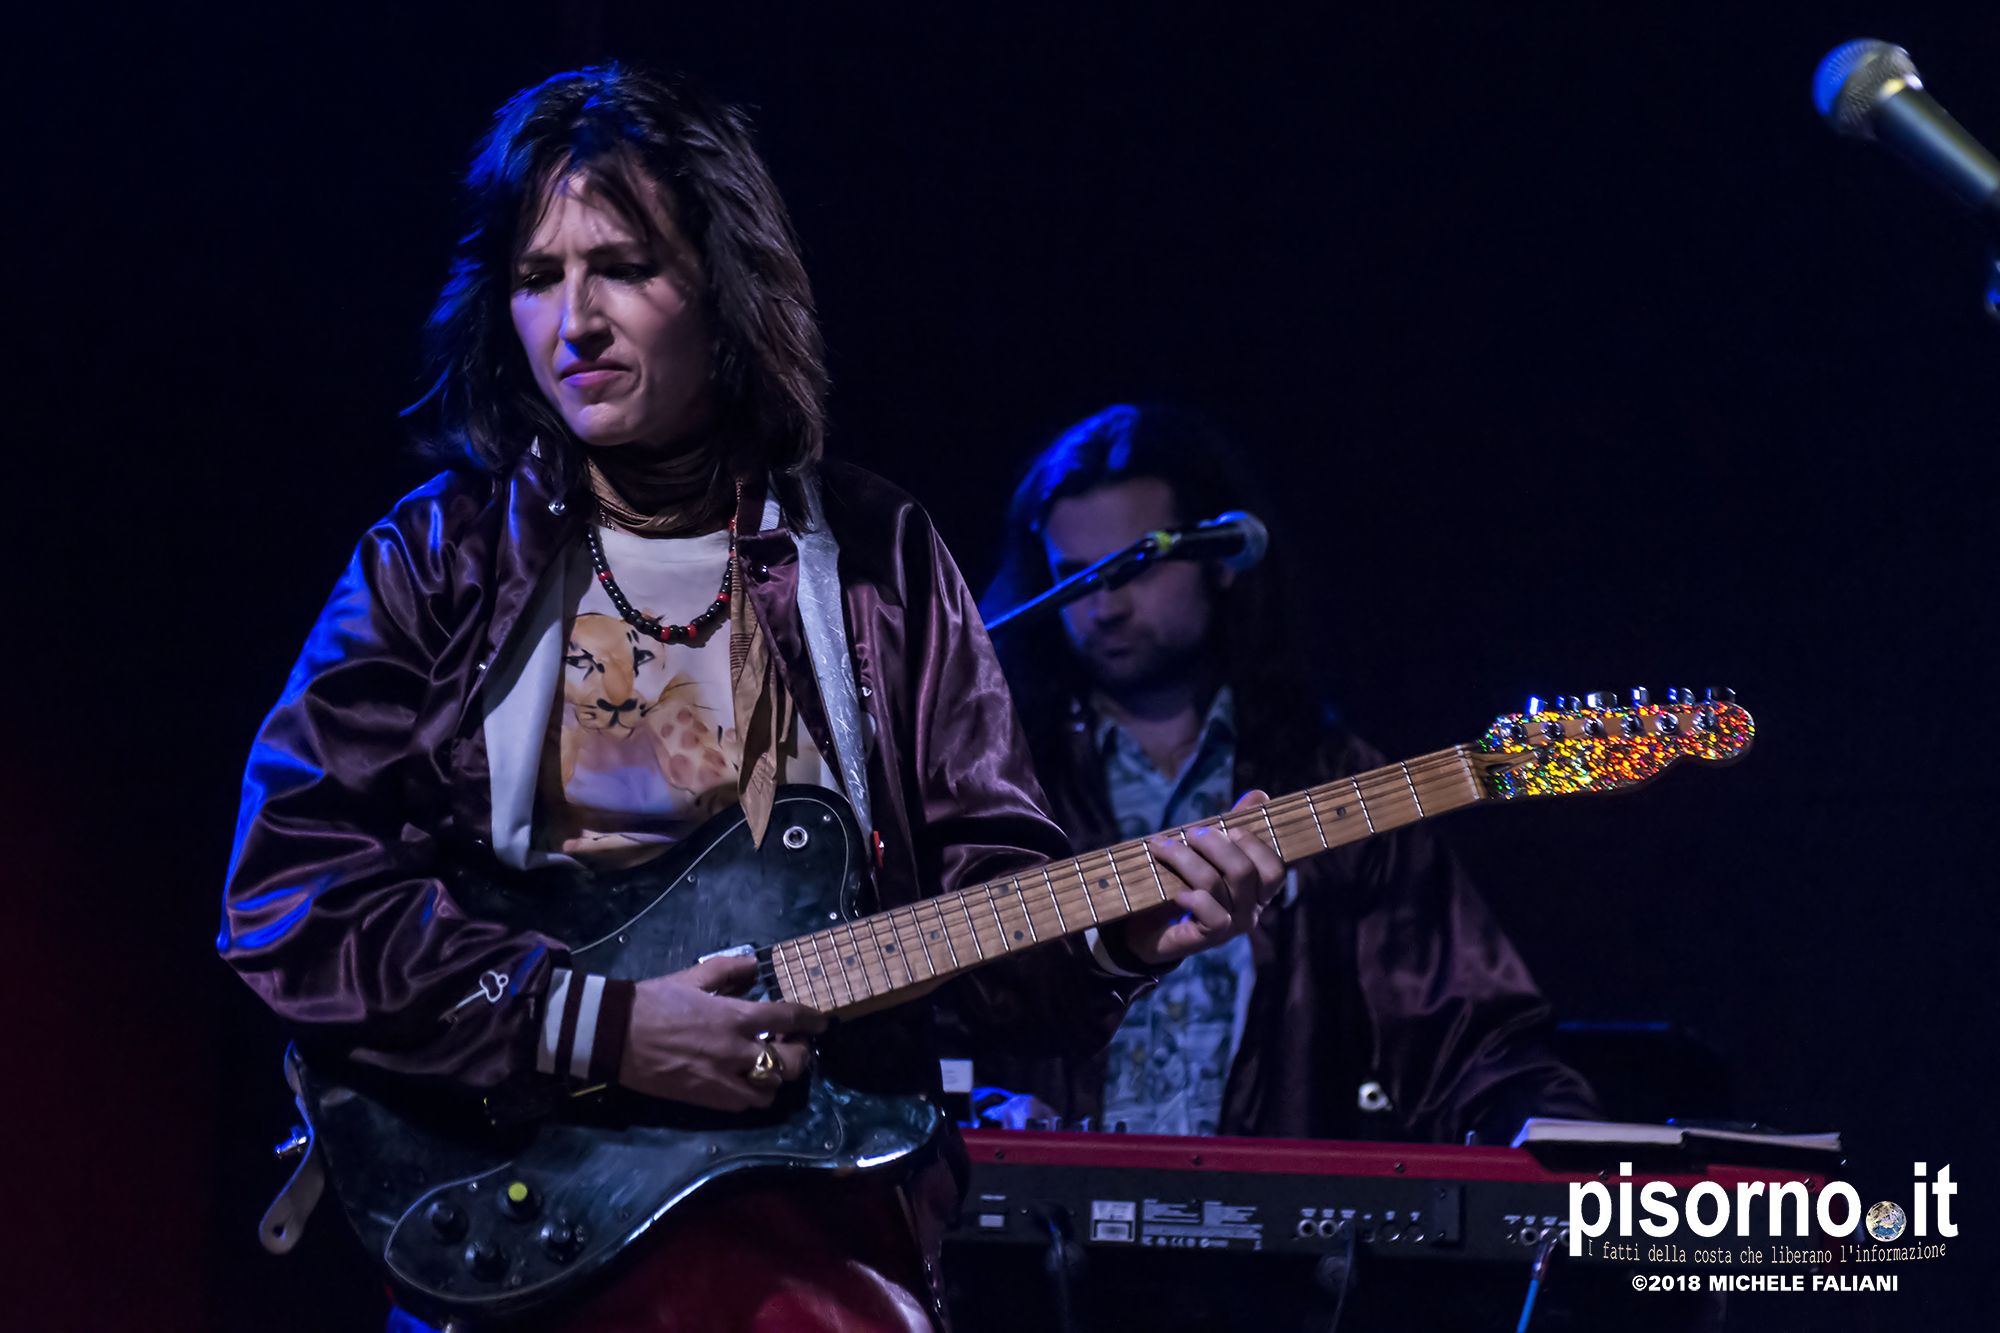 Joan As Police Woman @ Viper (Firenze, Italy), March 25th 2018)